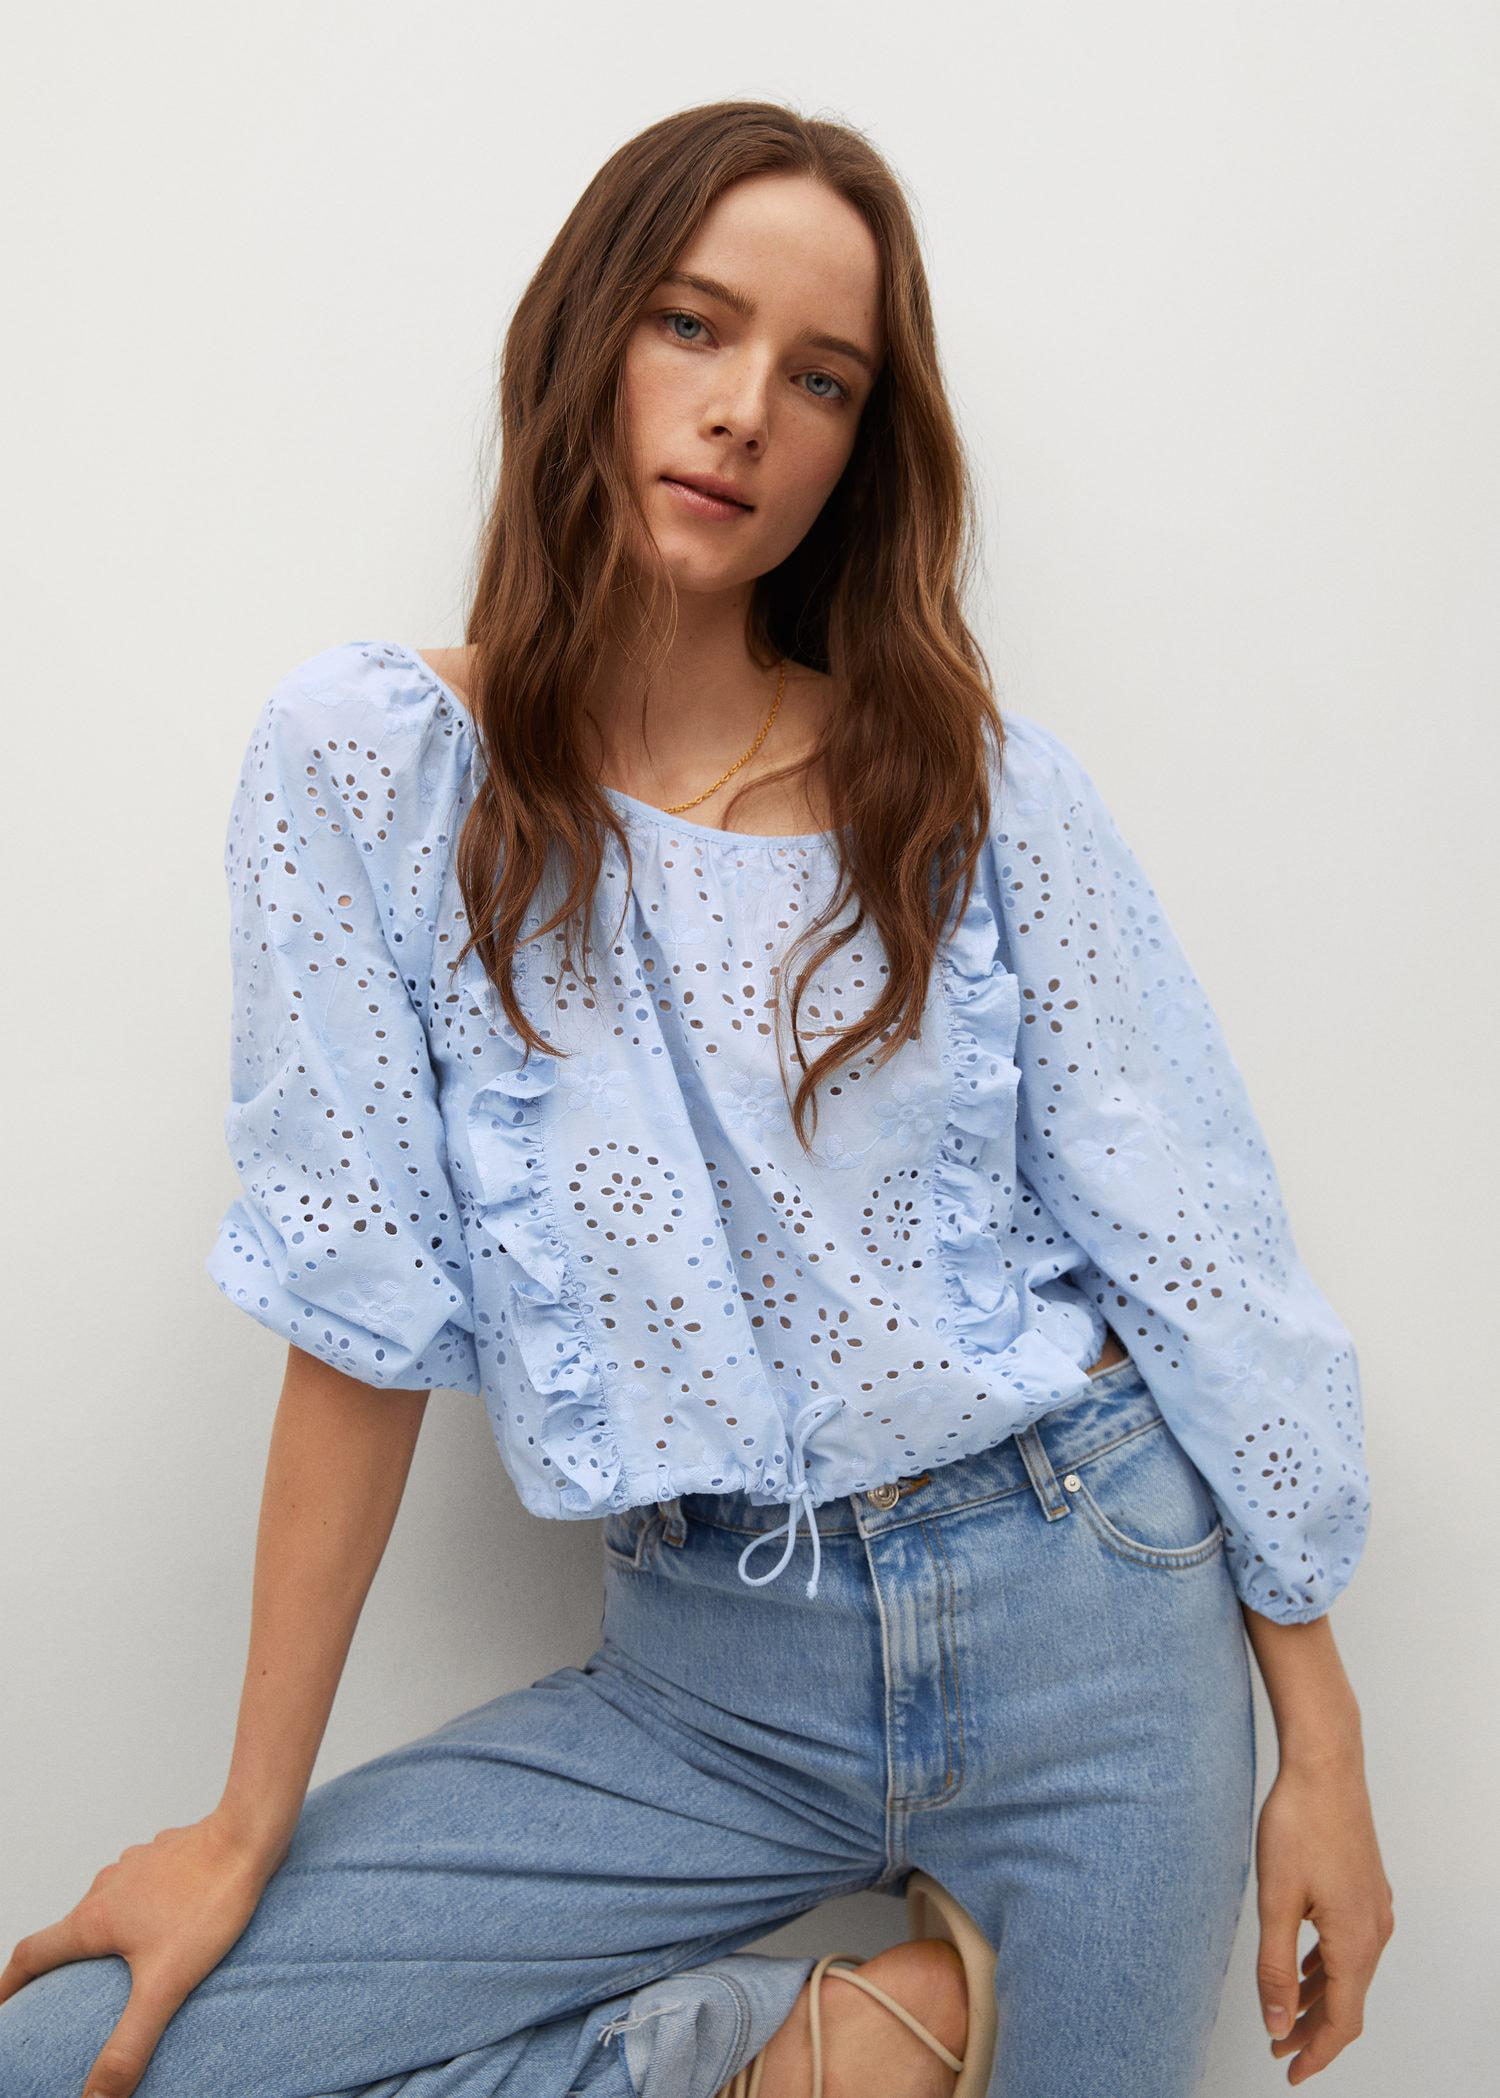 Swiss embroidery cotton blouse